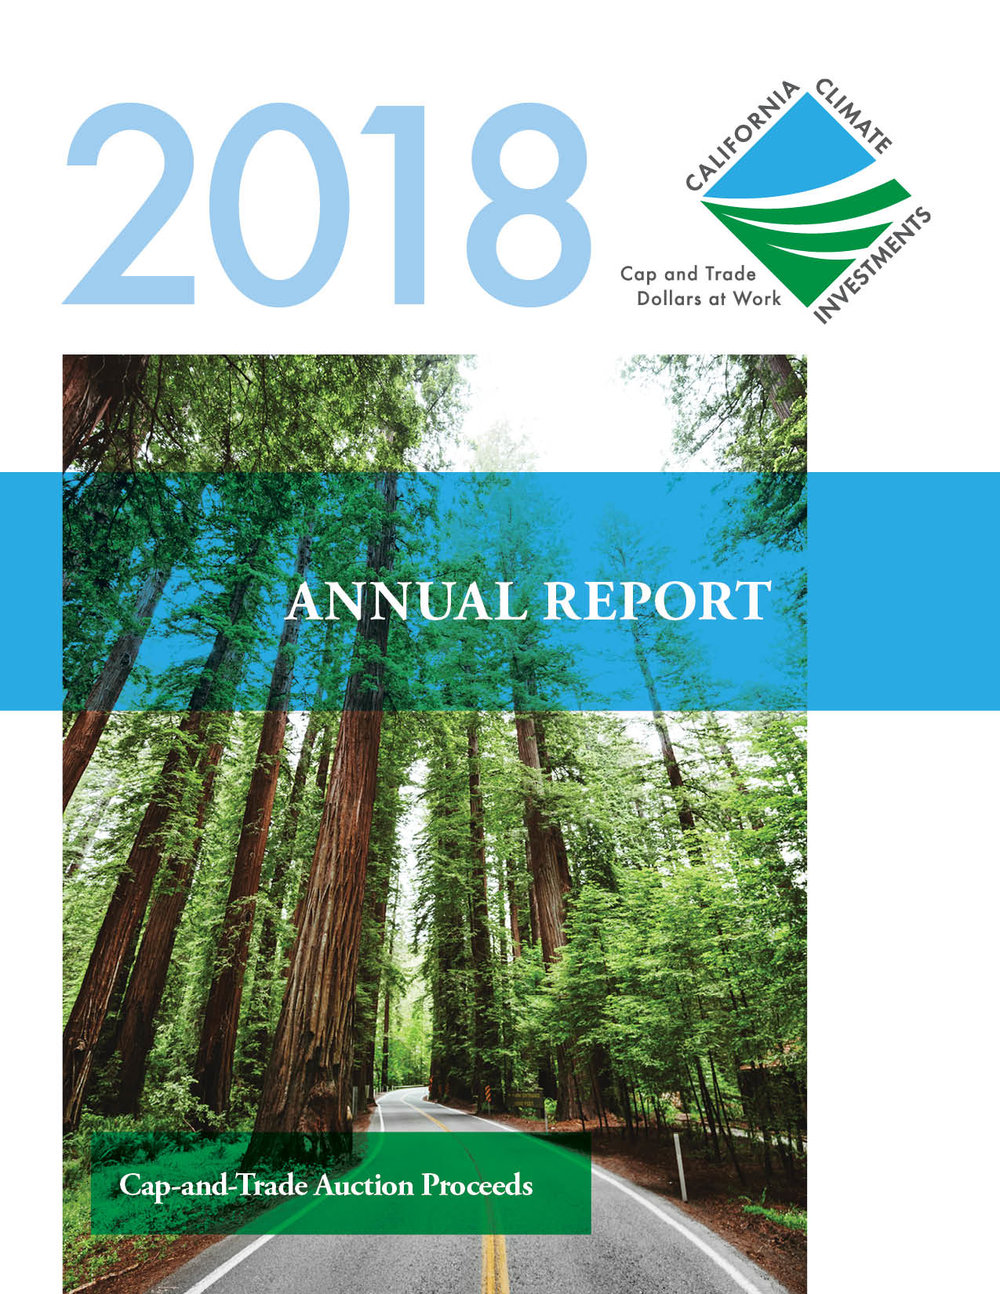 Front Cover: 2018 Annual report to the legislature on California climate investments using cap-and-trade Auction Proceeds. The cover image depicts a winding road through a forest. Links to 2018 annual report document.